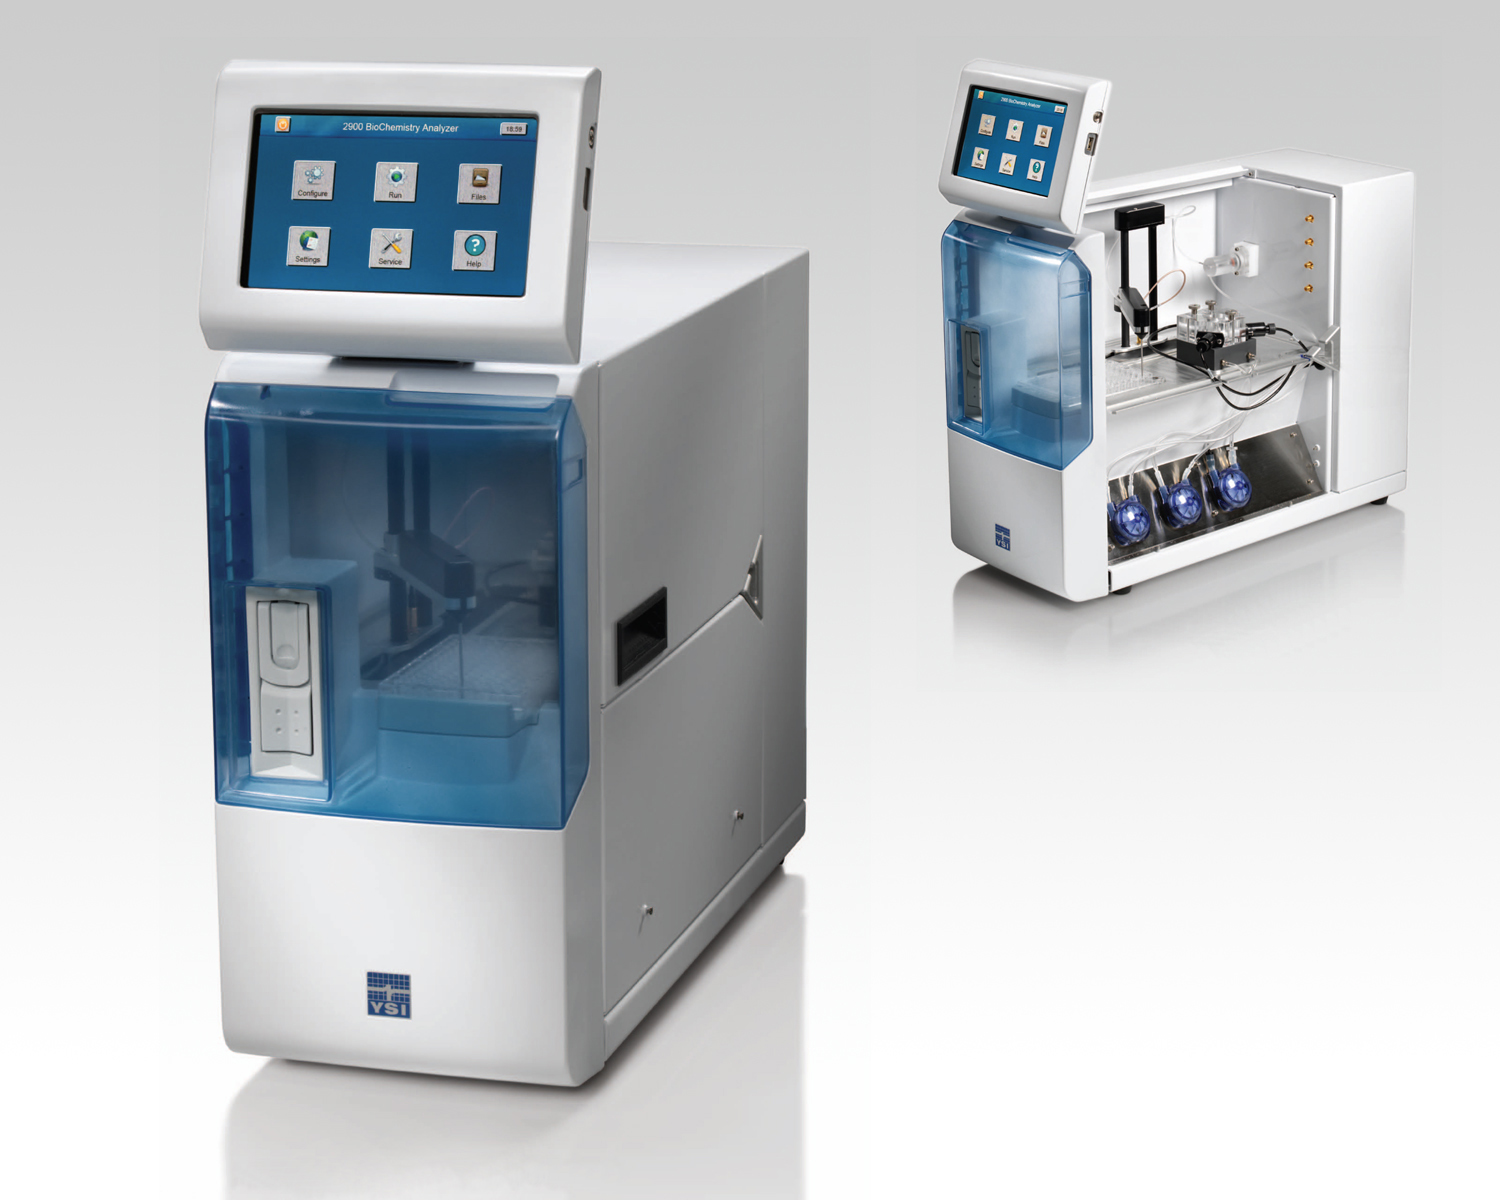 YSI 2900 Biochemistry Analyzer